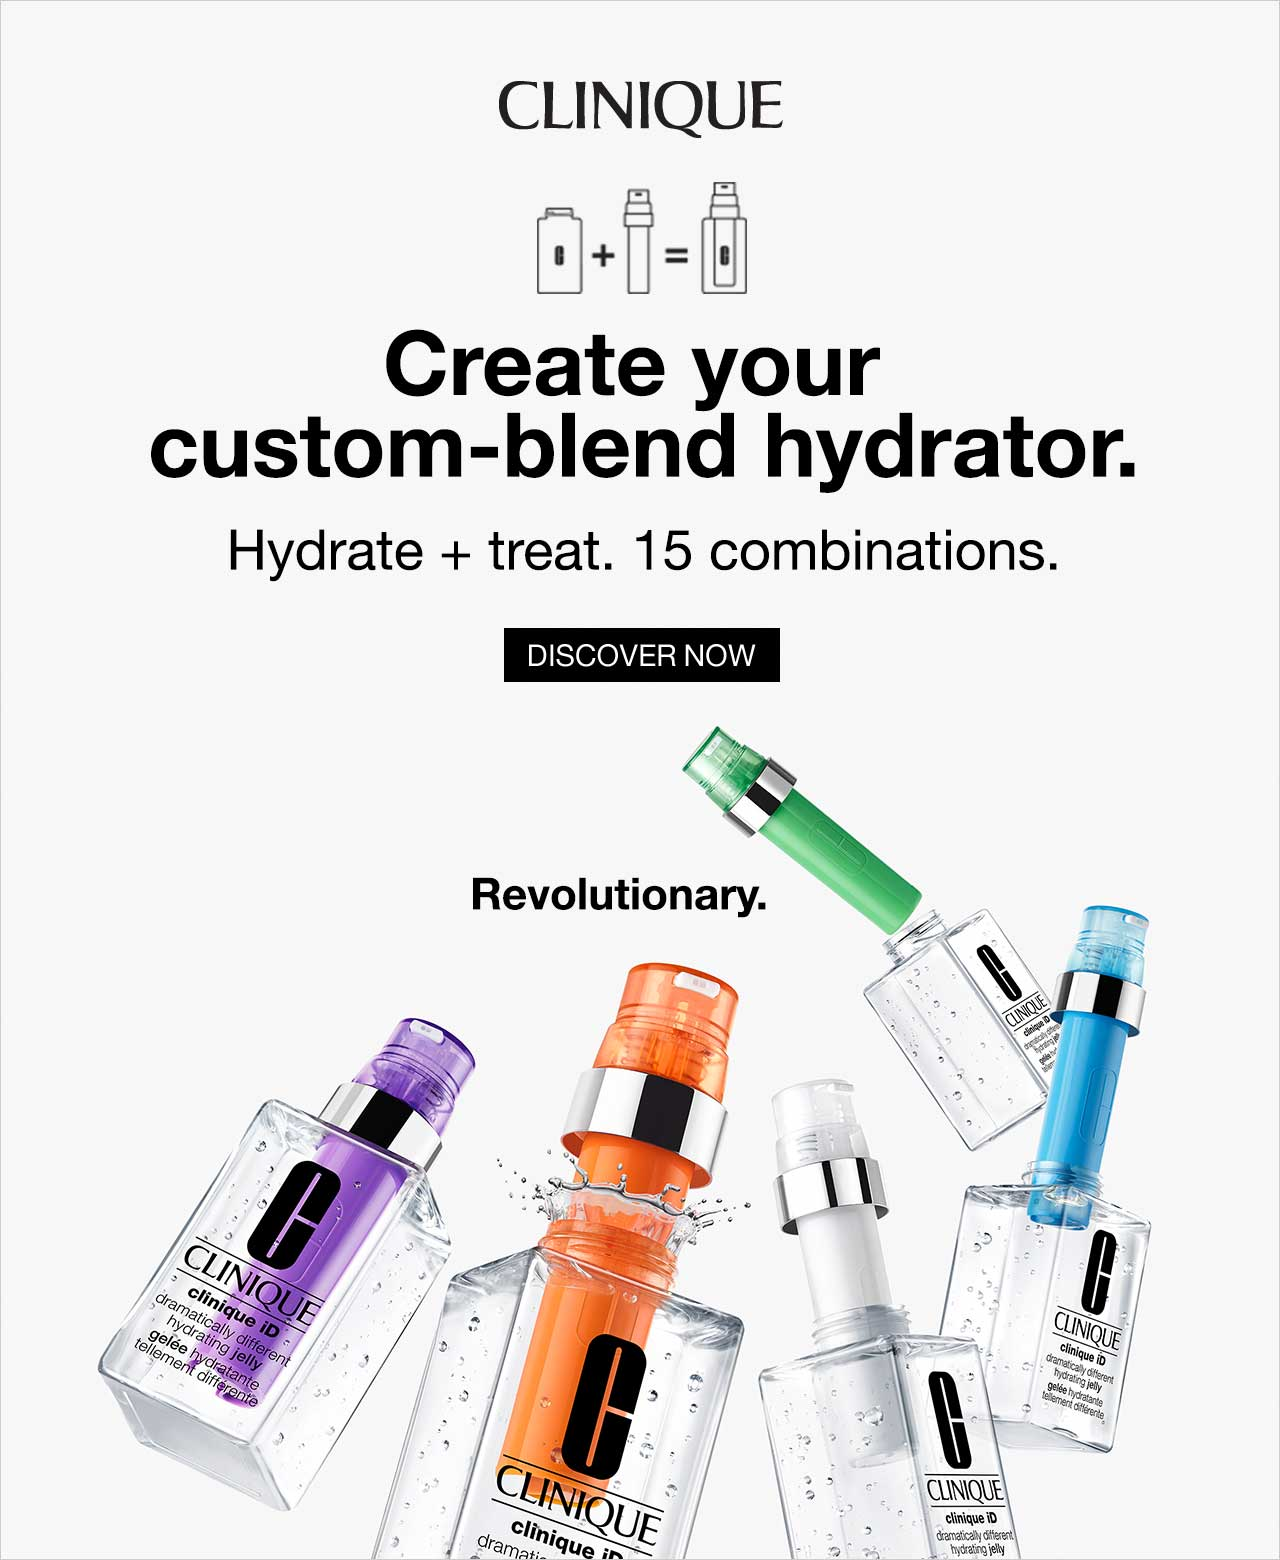 Create your custom-blend hydrator. Hydate + treat. 15 combinations. Discover now